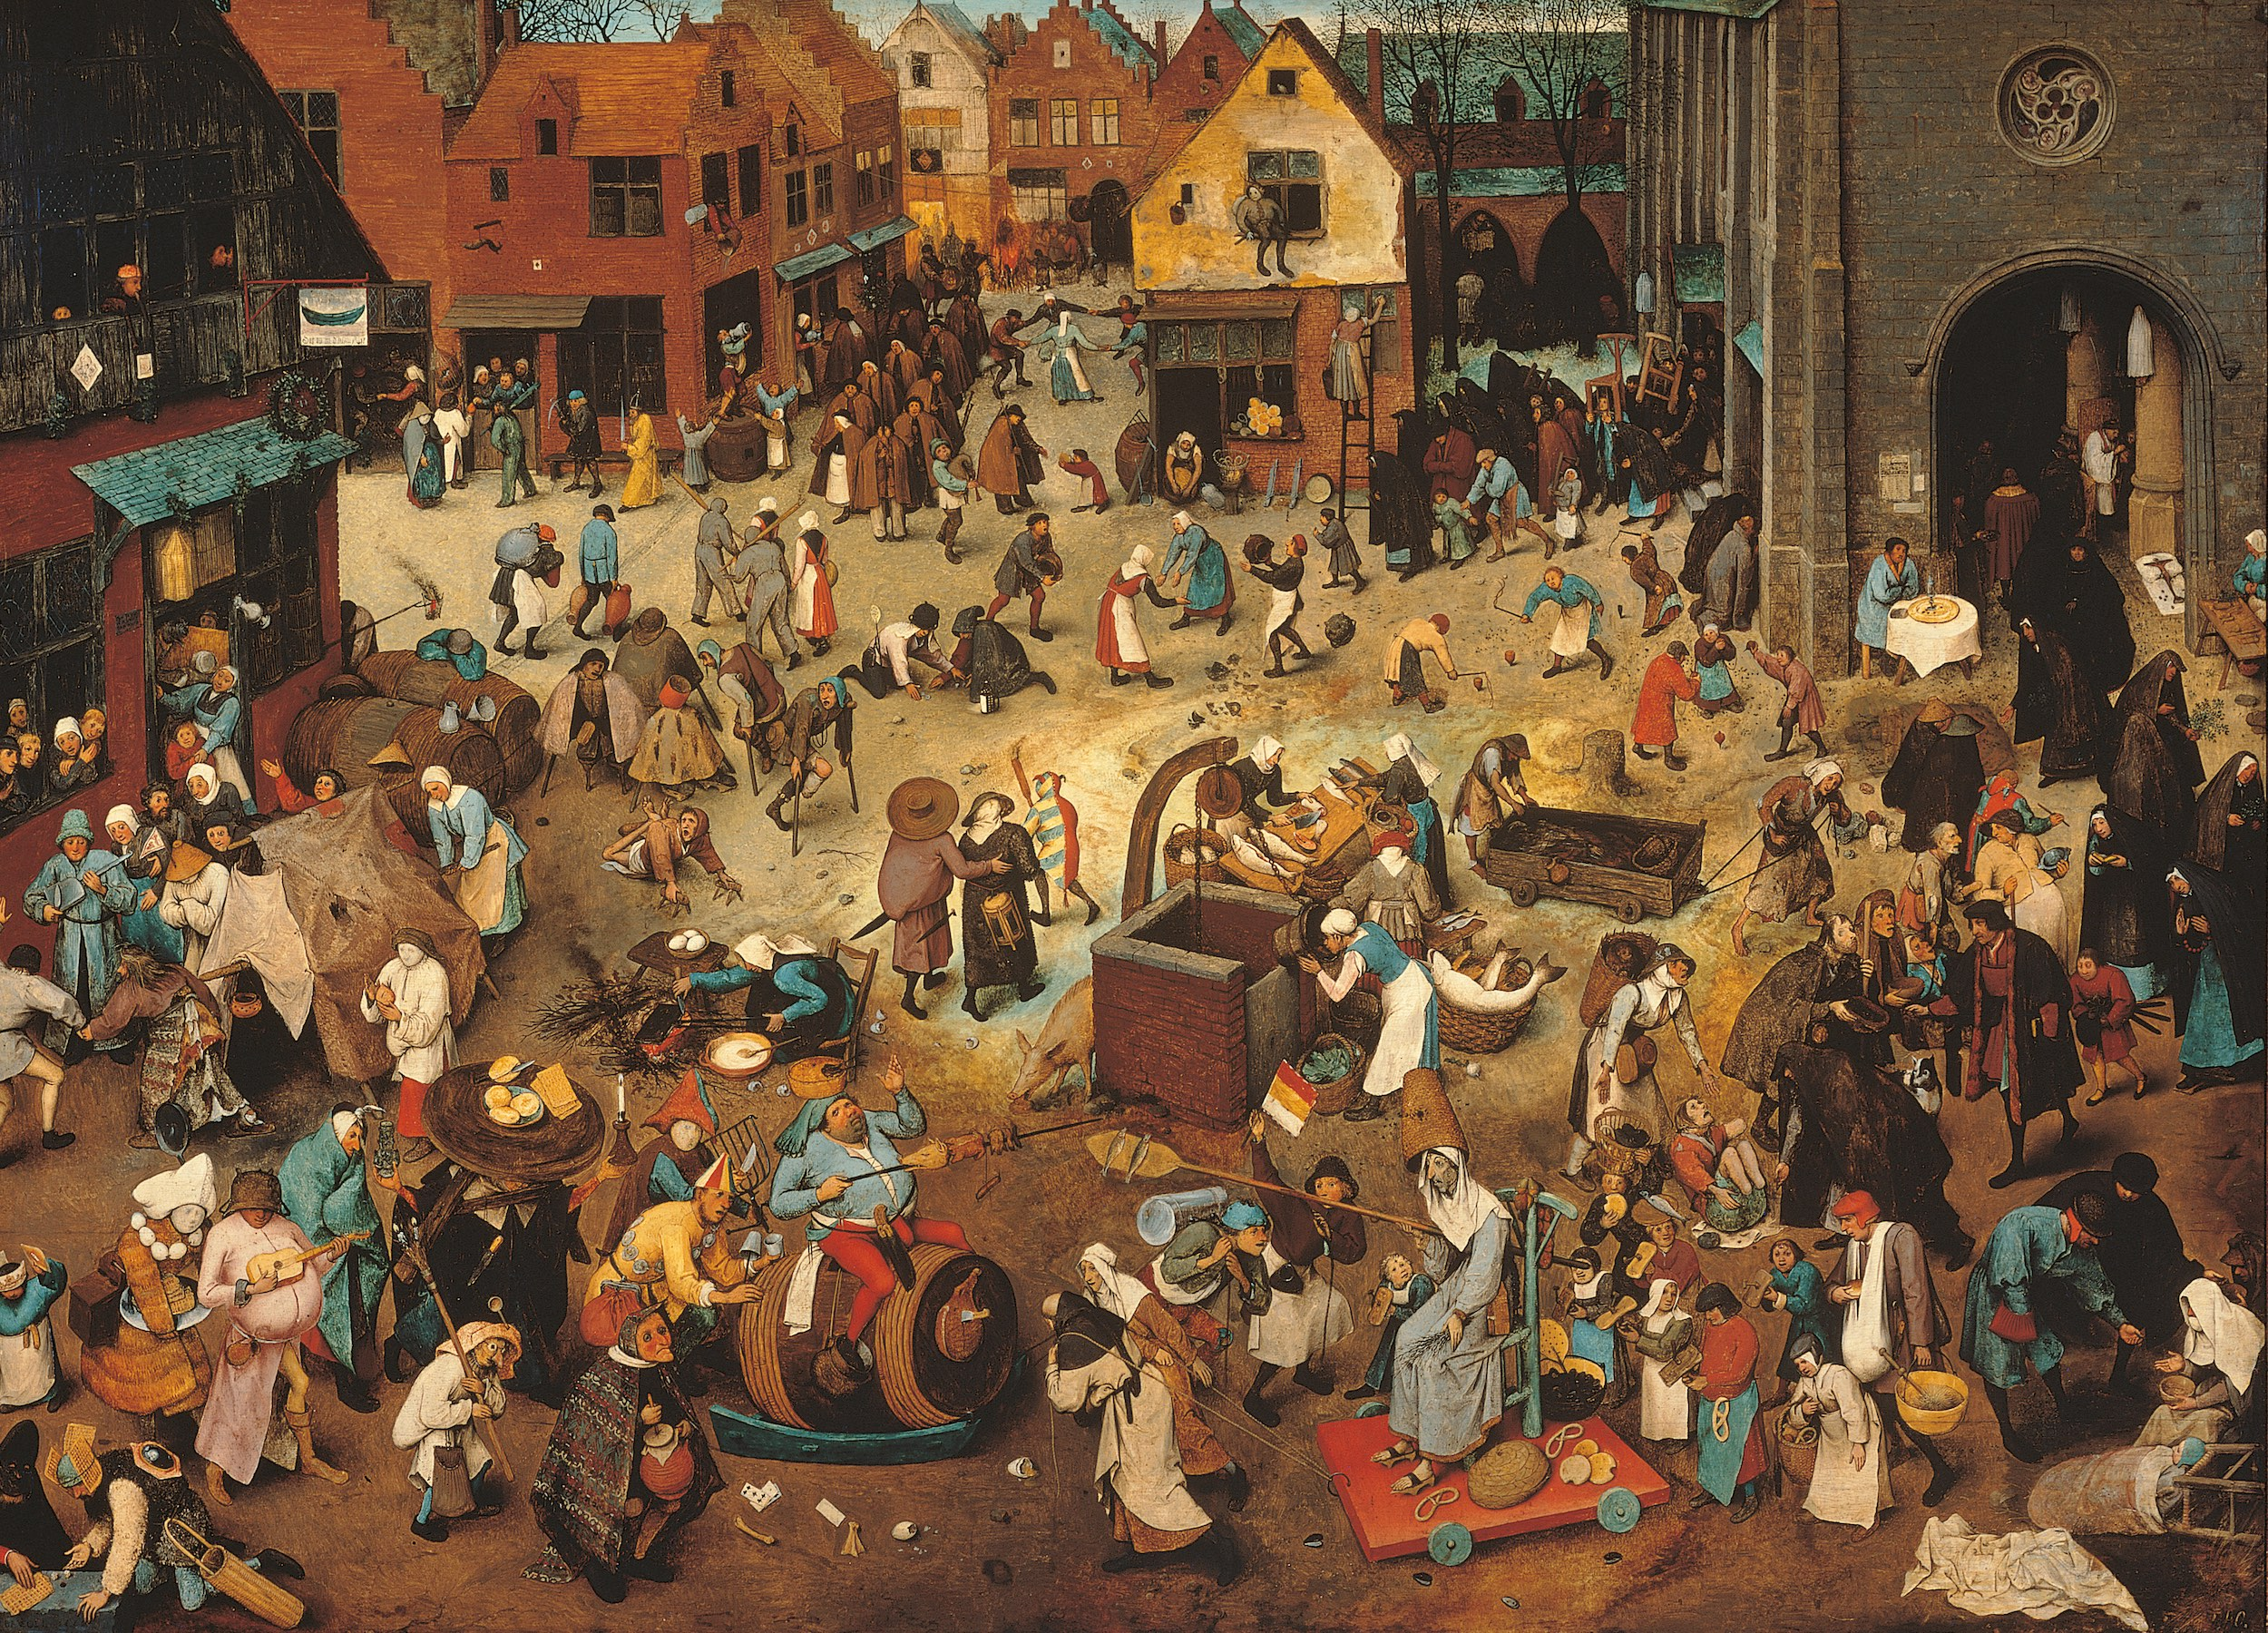 Pieter Bruegel the Elder (c. 1525-69),  Battle Between Carnival, or Mardi Gras, and Lent,  1559, oil on board, 46 1/2 x 64 4/5 inches (118 x 164.5 cm.) Collection of Kunsthistorisches Museum, courtesy of Kunsthistorisches Museum, Vienna, Austria, Mondadori Portfolio, Electa, Remo Bardazzi, Bridgeman Images